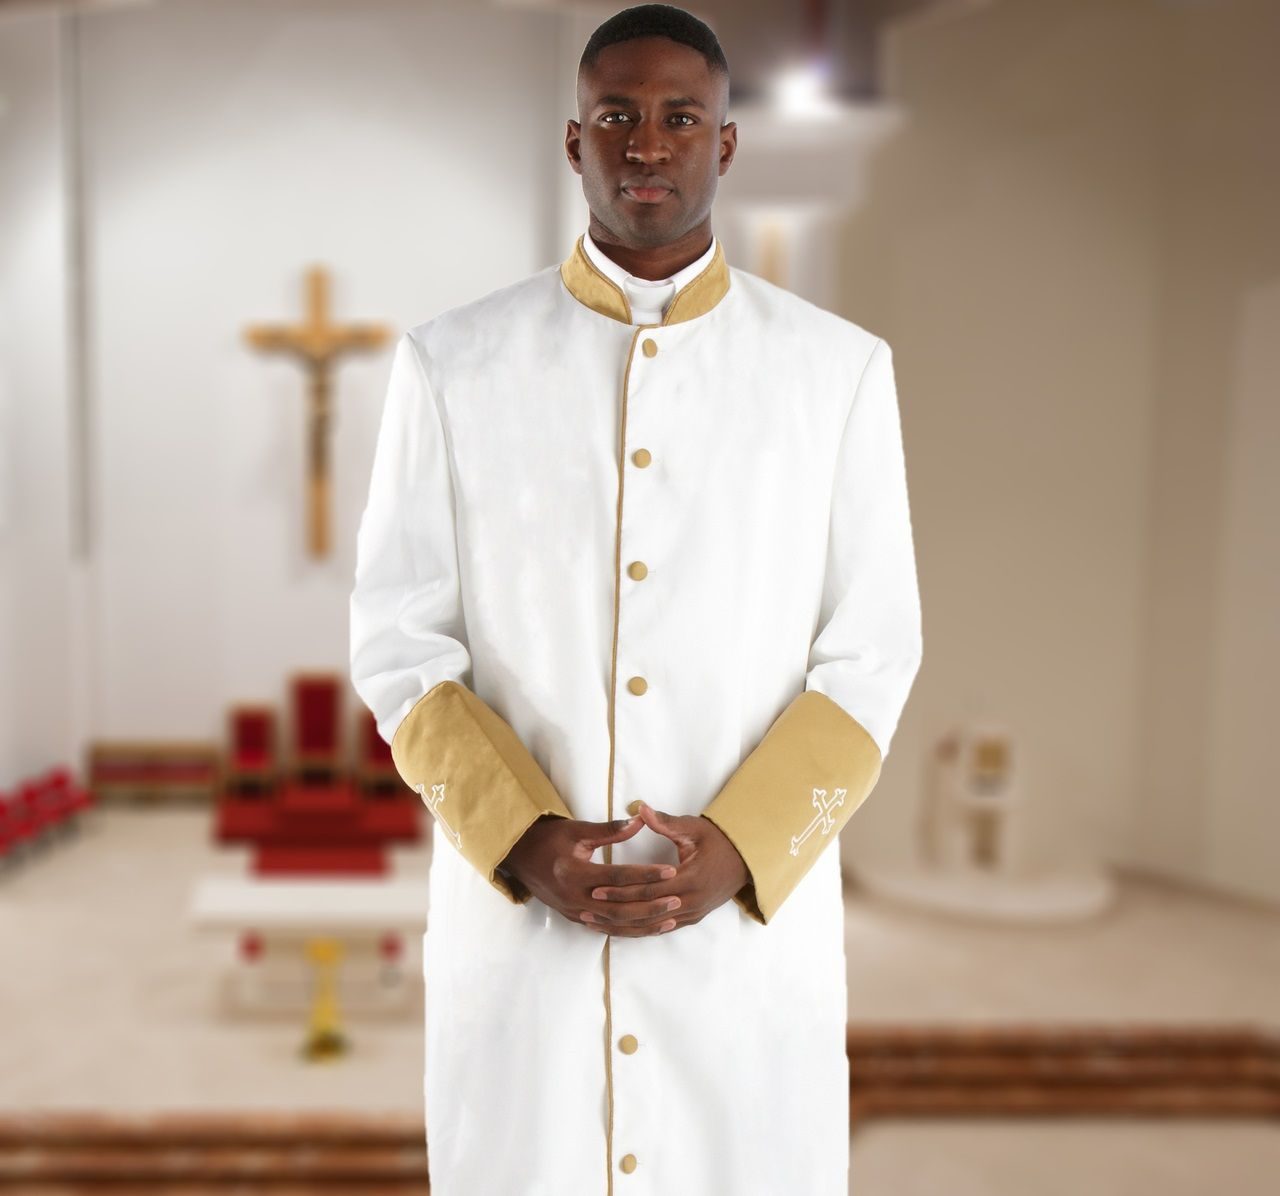 310 M. Men's Clergy Robe - White/Gold Cuffs